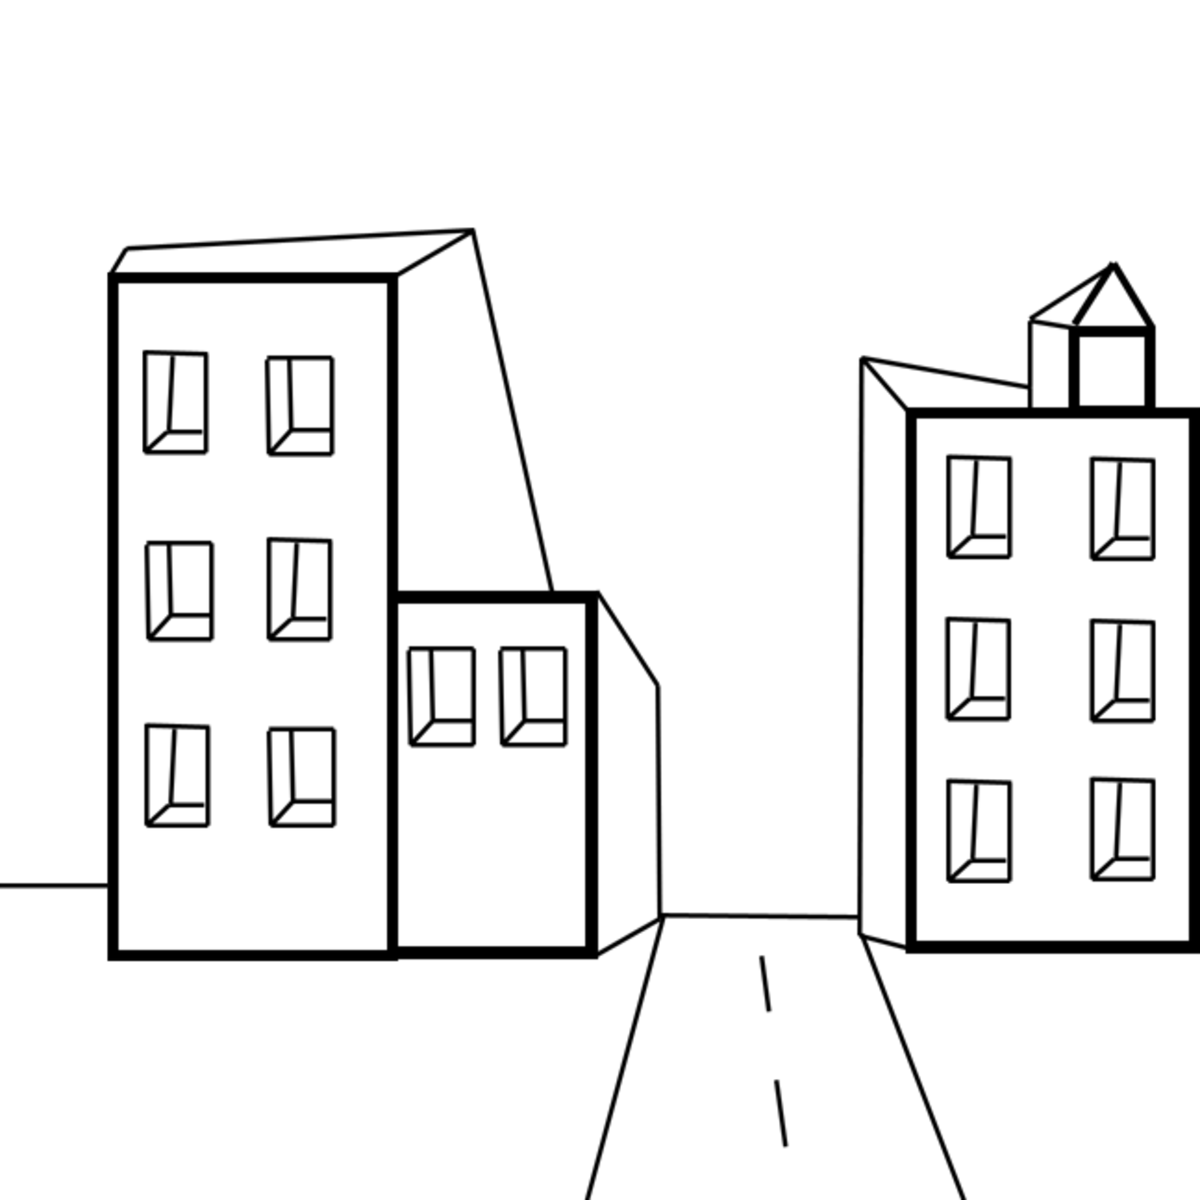 How to Do a Simple Single-Point Perspective Drawing